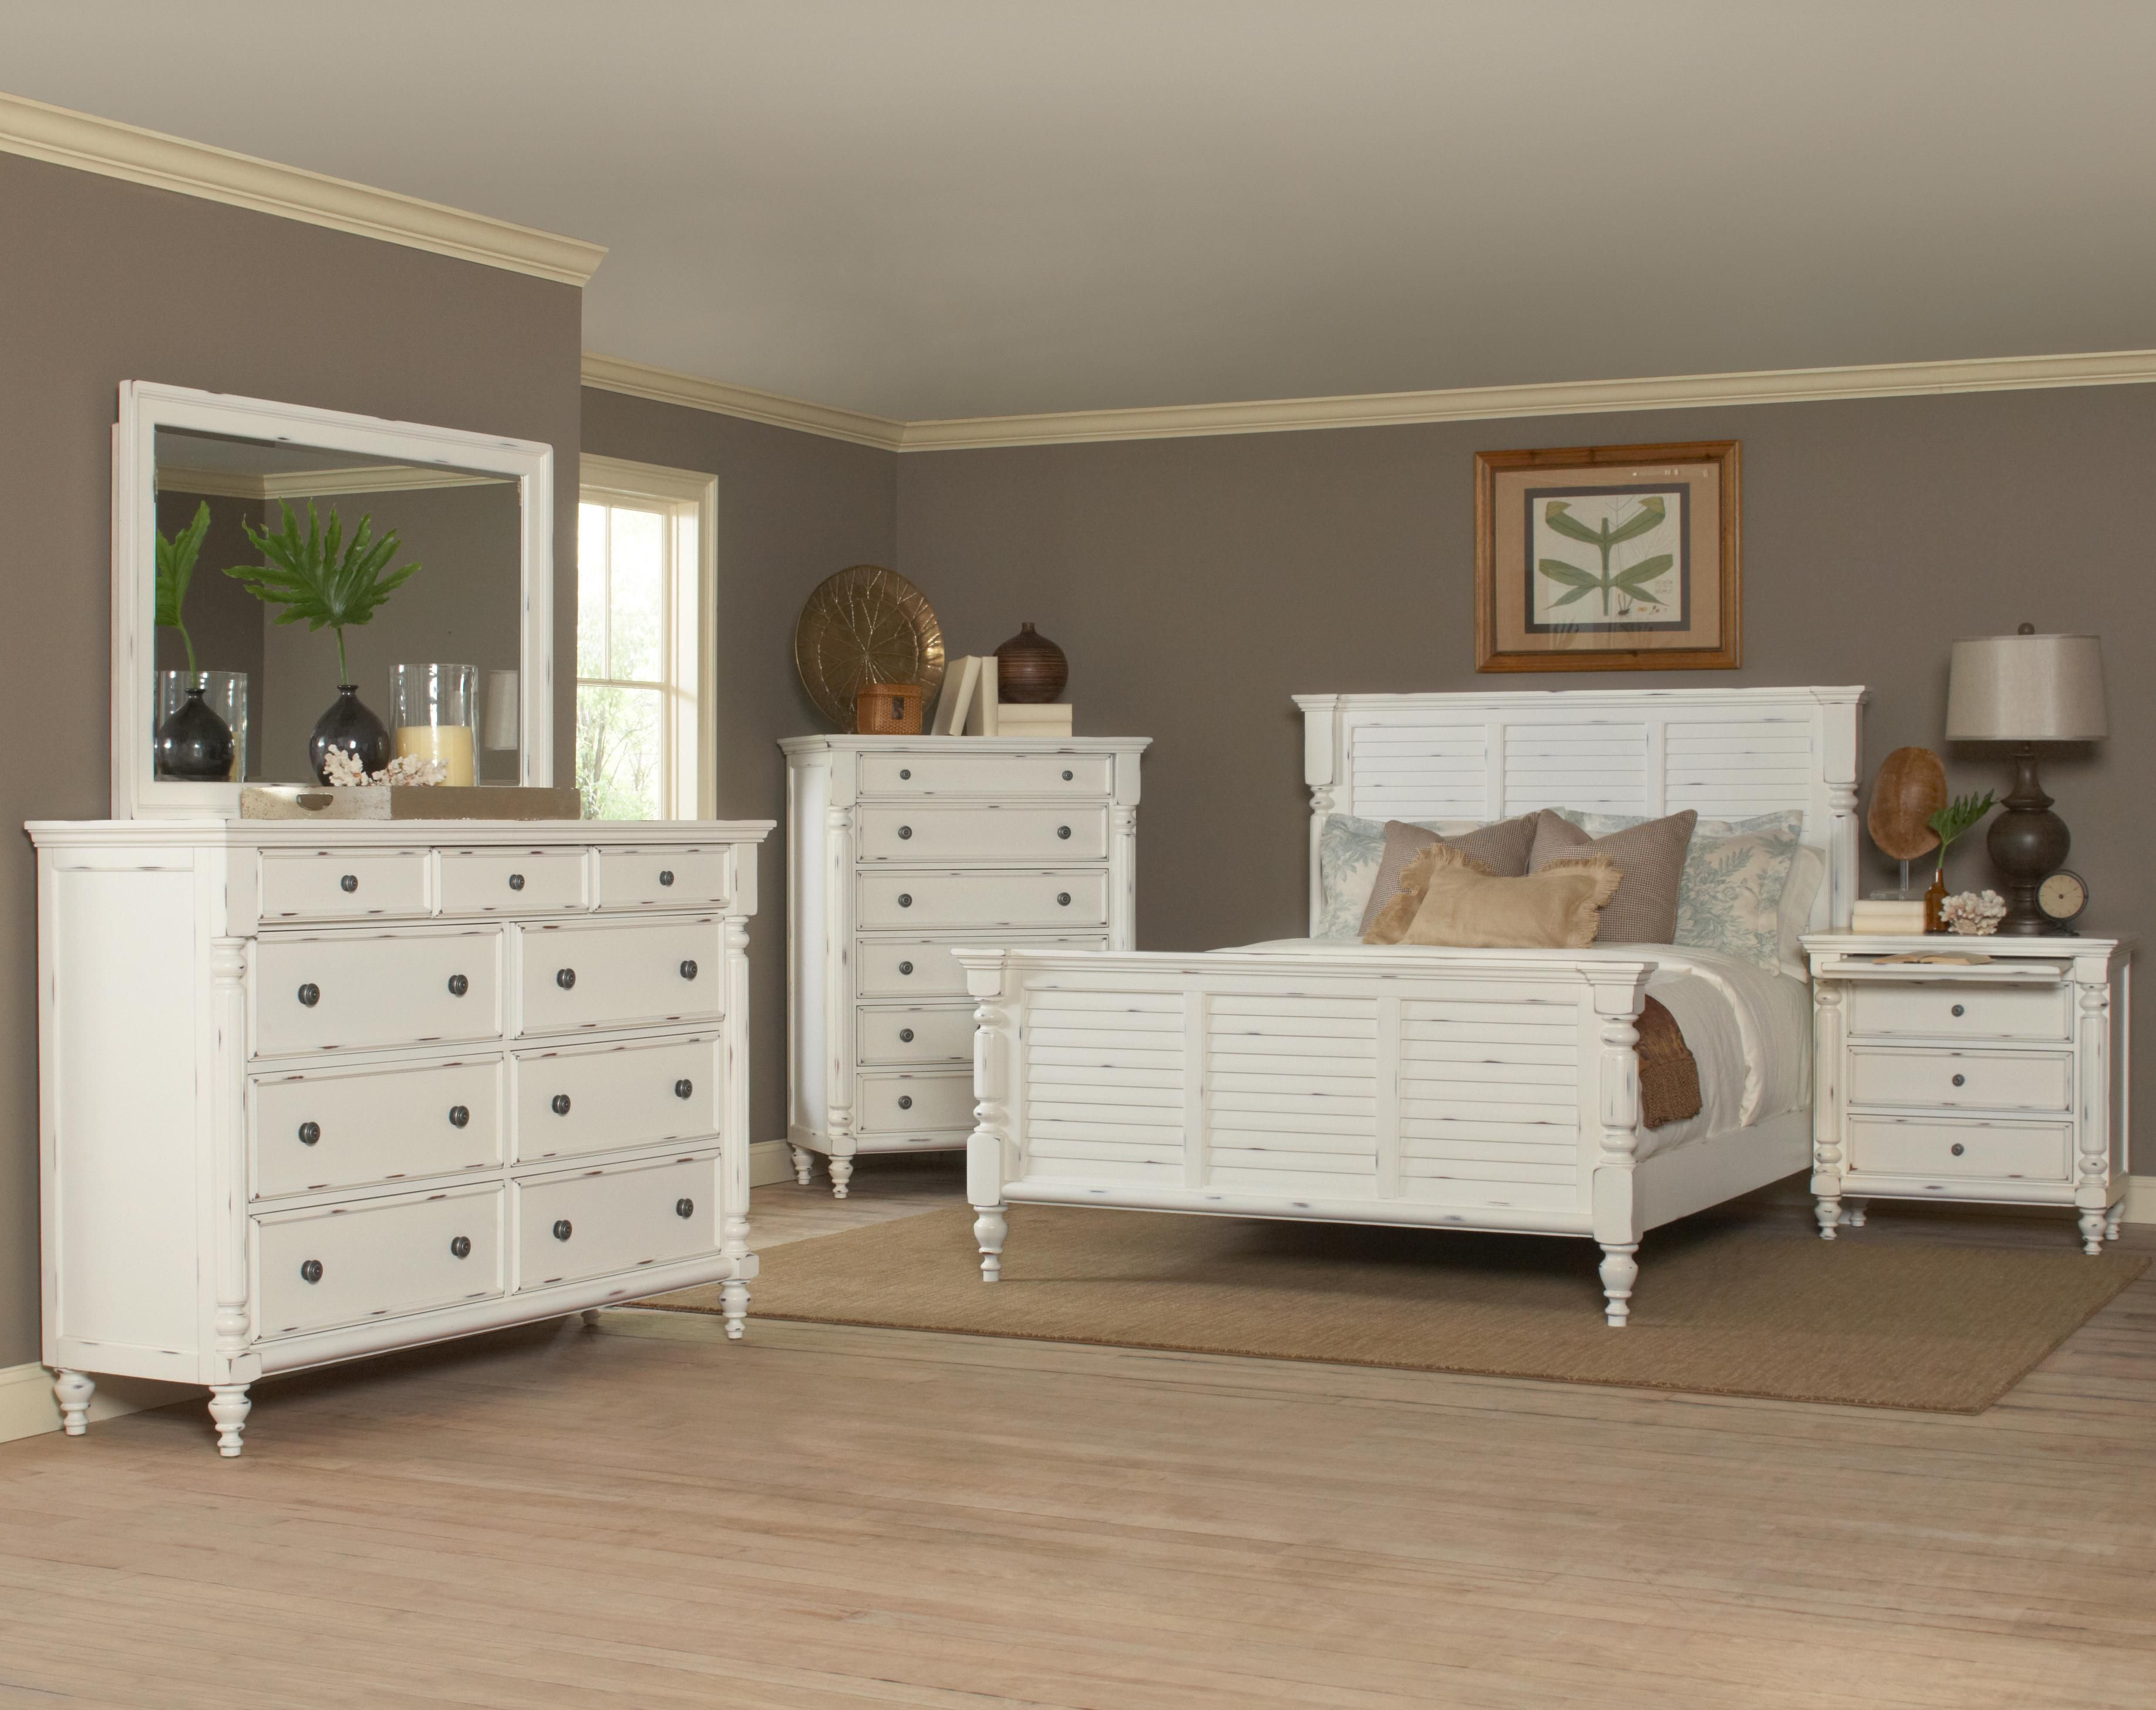 West Keys 00 022 By New Classic Ivan Smith Furniture